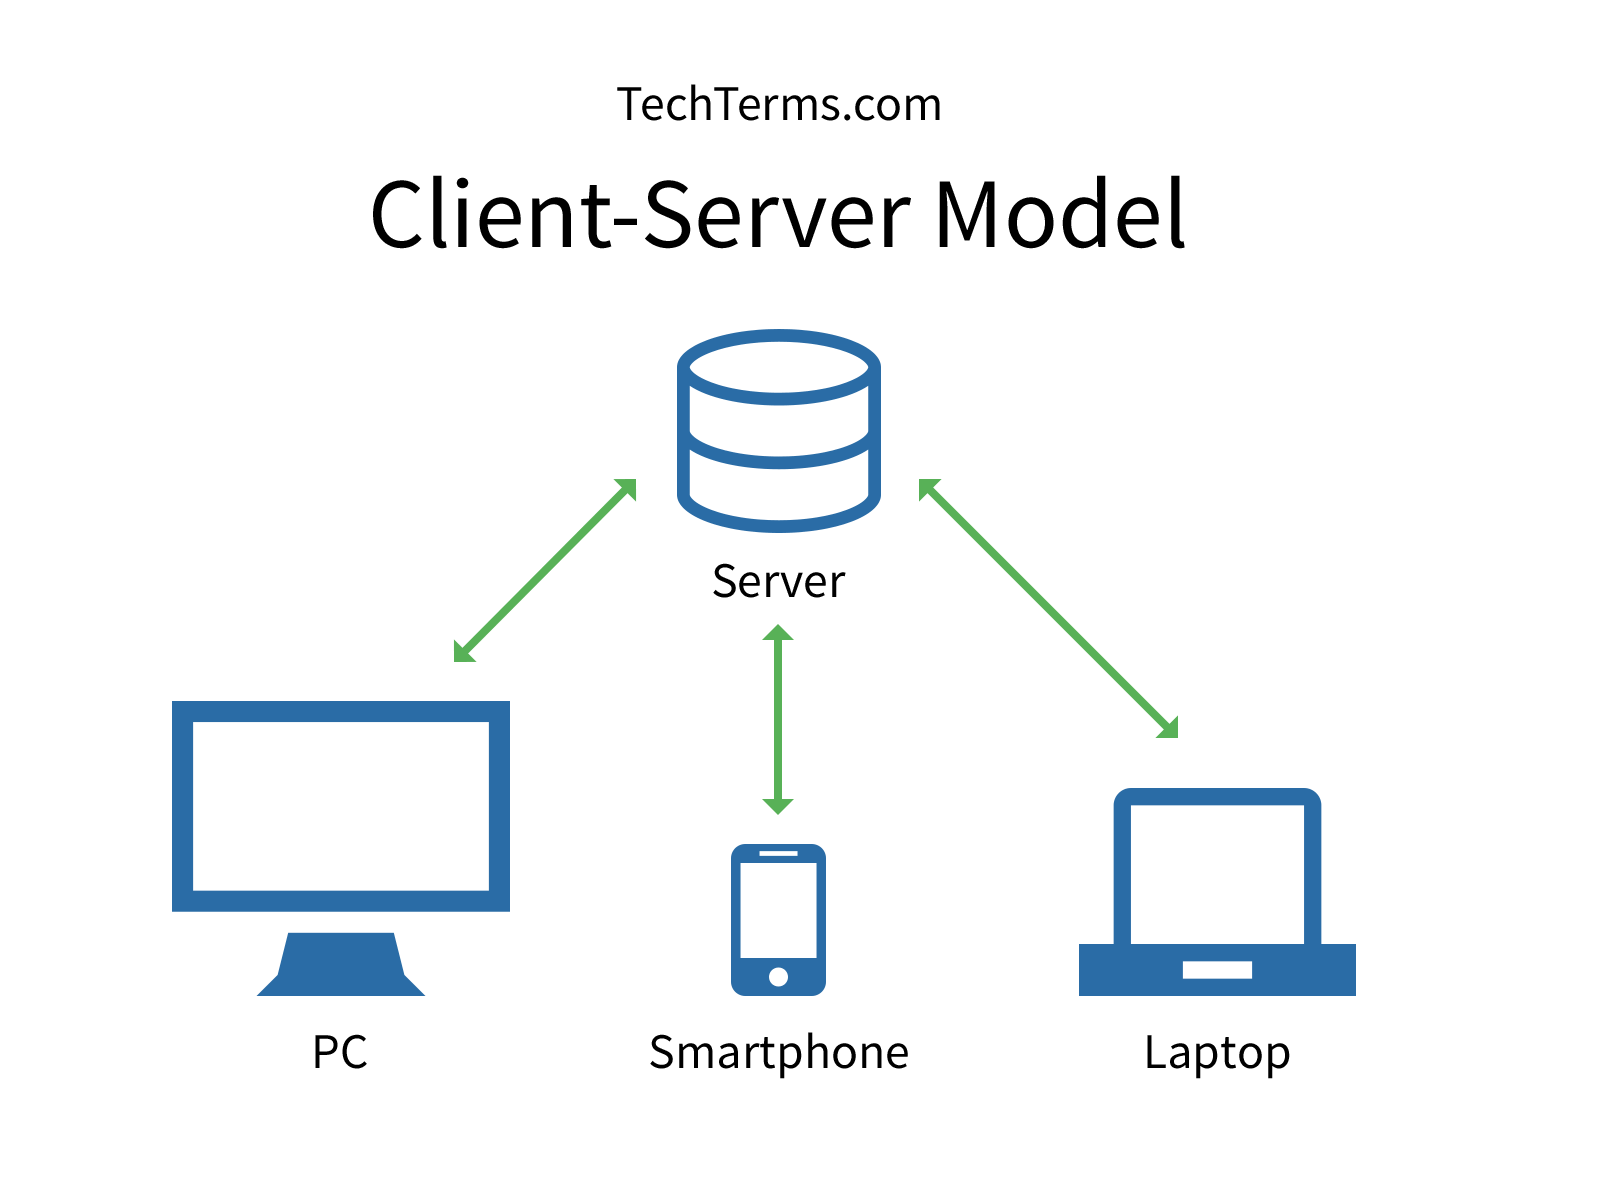 Networking drawing computer server. Client model definition clientserver